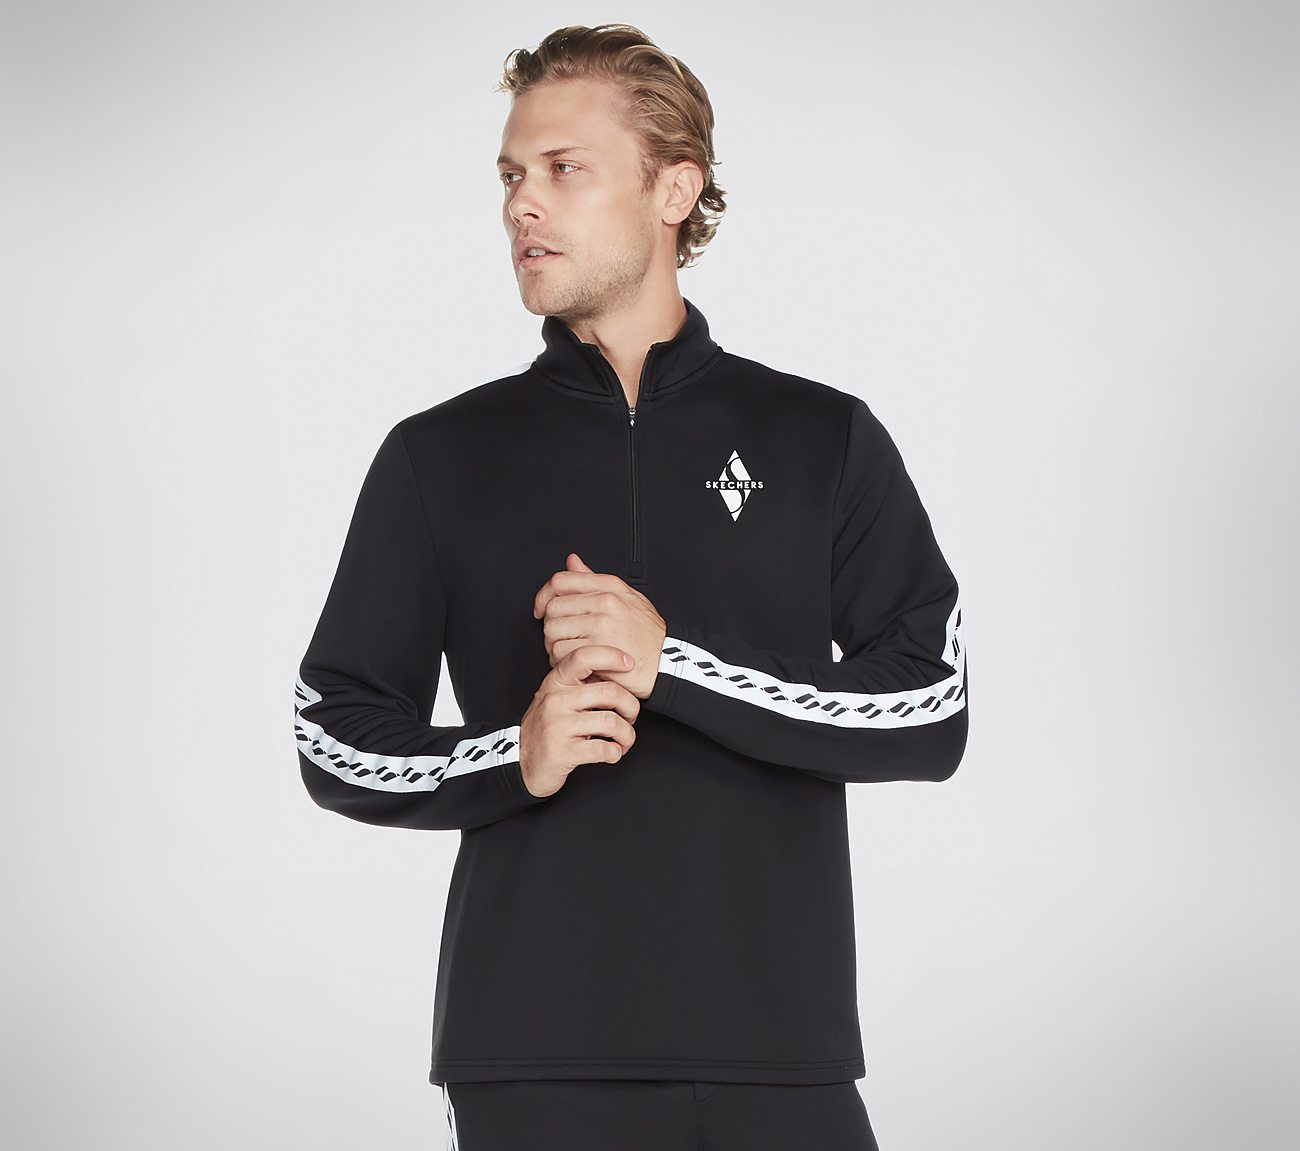 Skechers Apparel Legacy 1/4 Zip Jacket